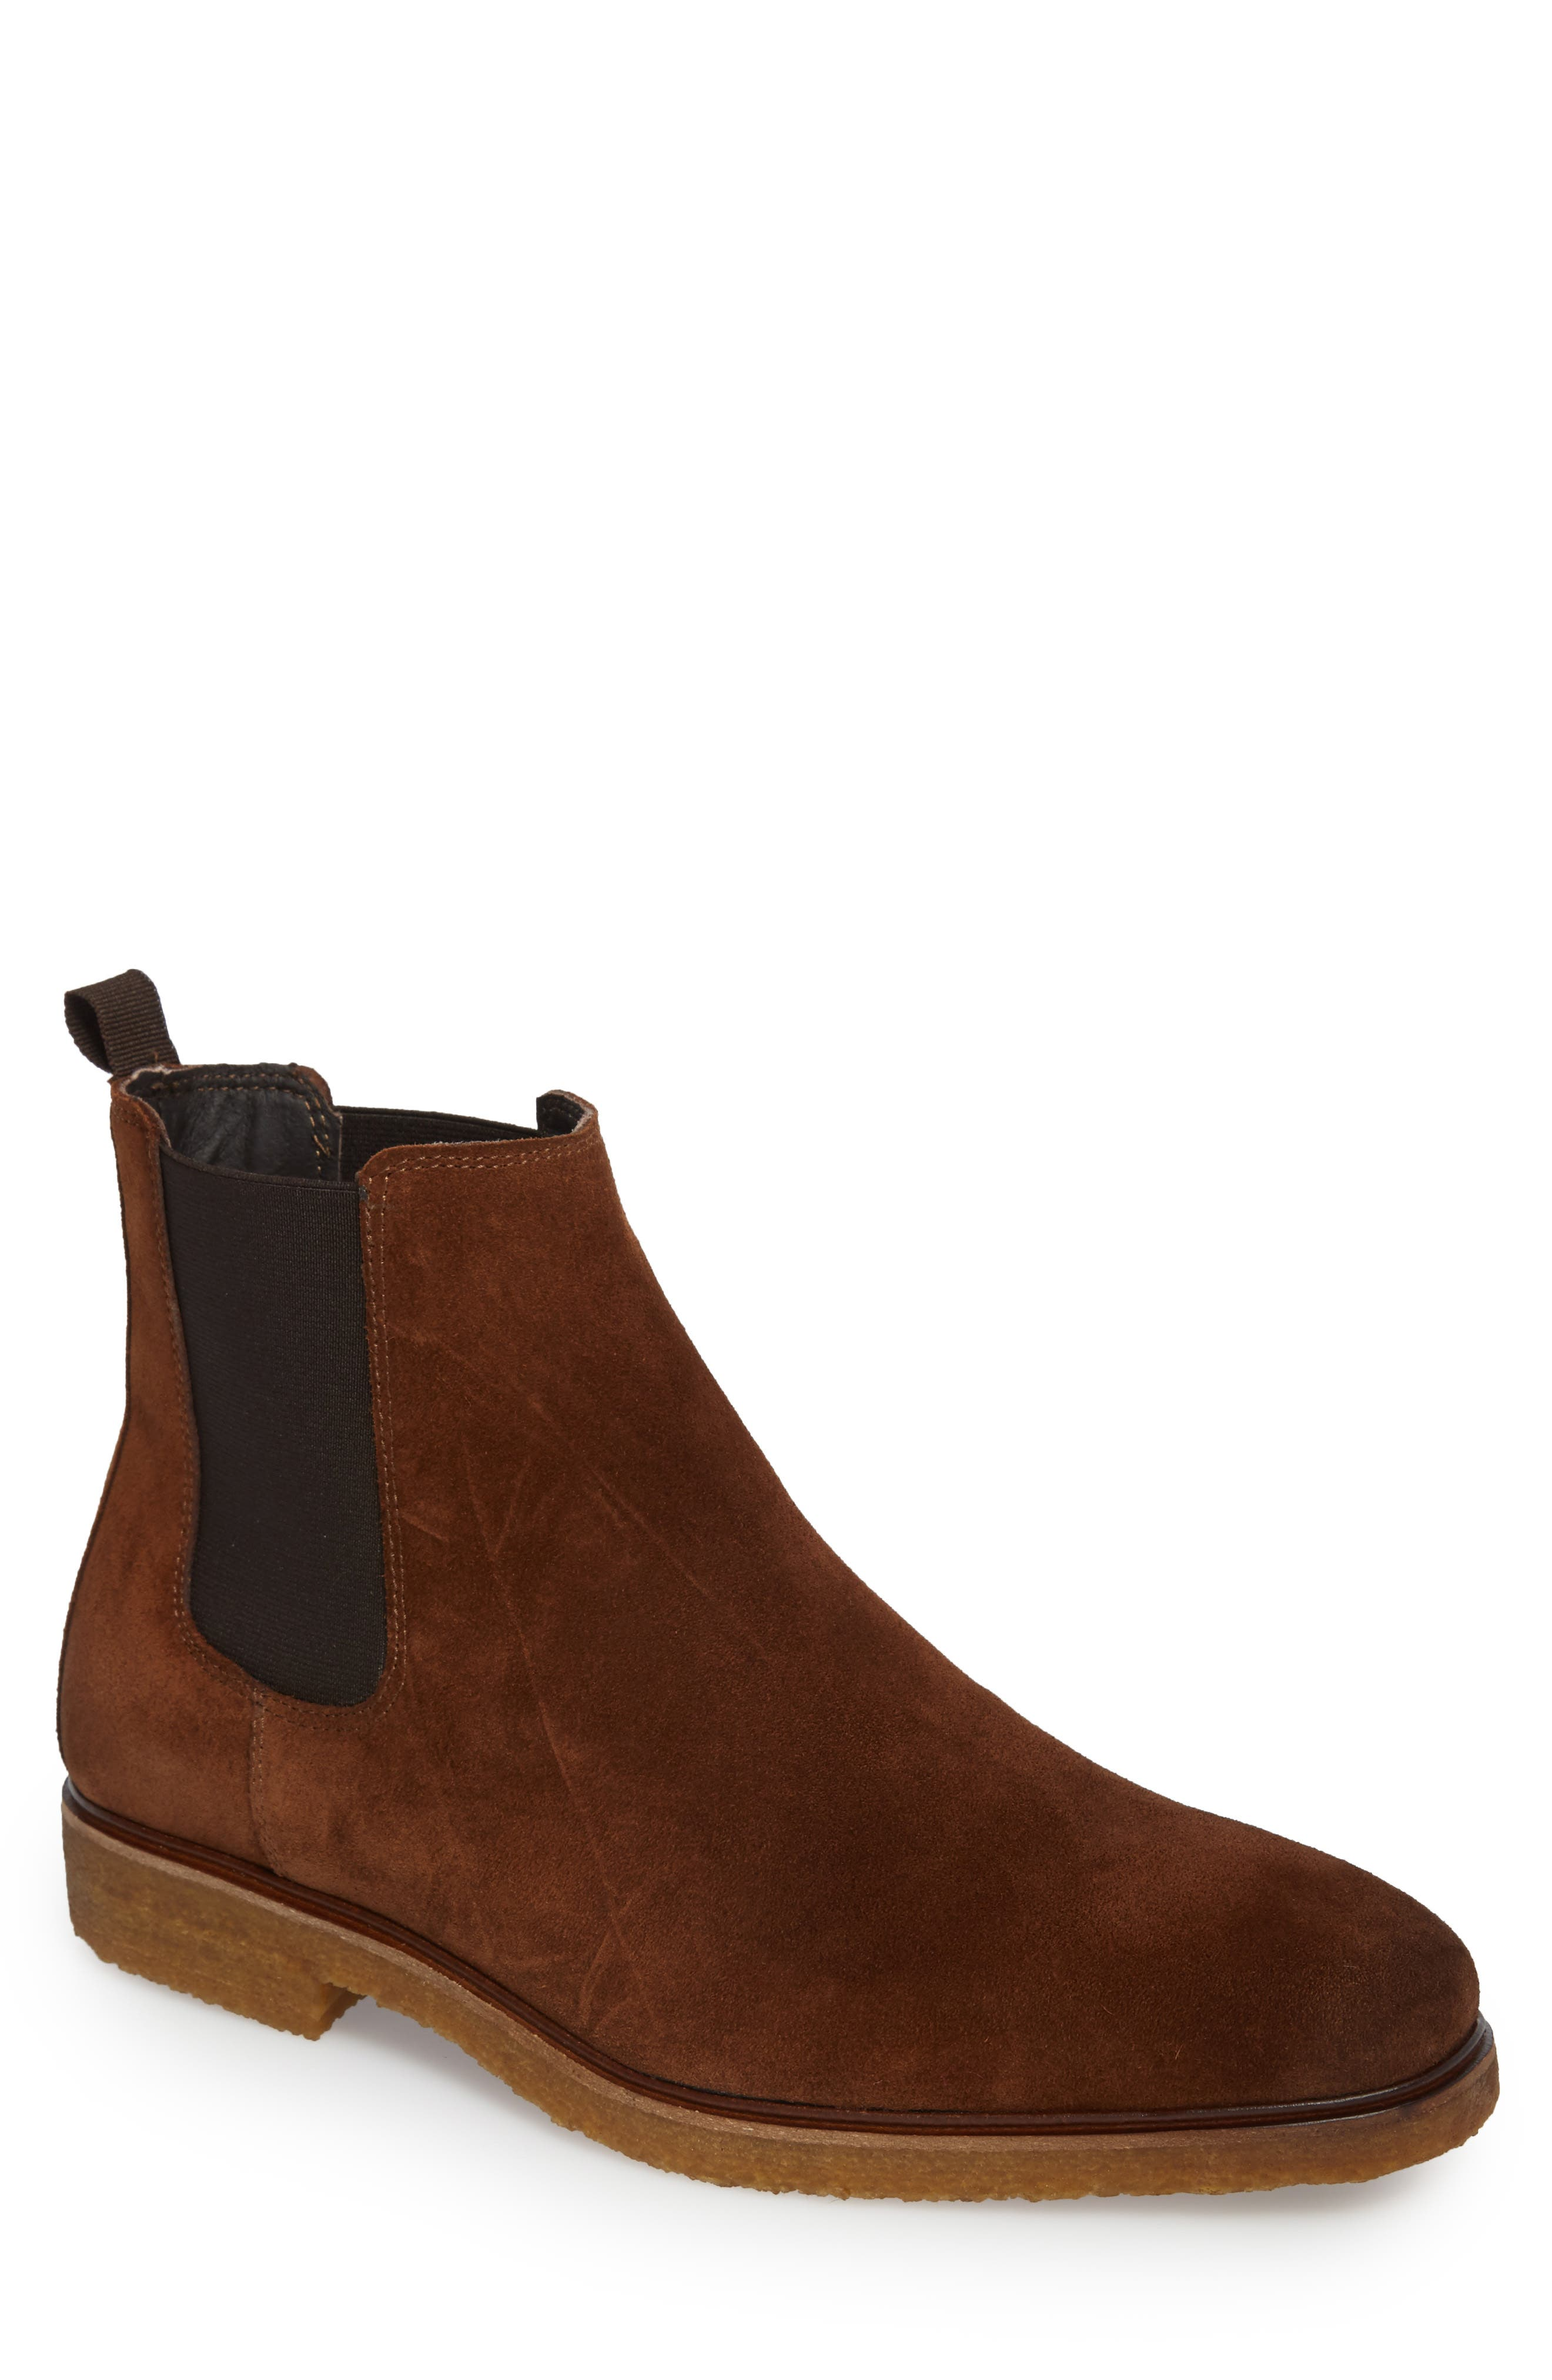 Sullivan Chelsea Boot,                         Main,                         color, Sienna Suede Leather